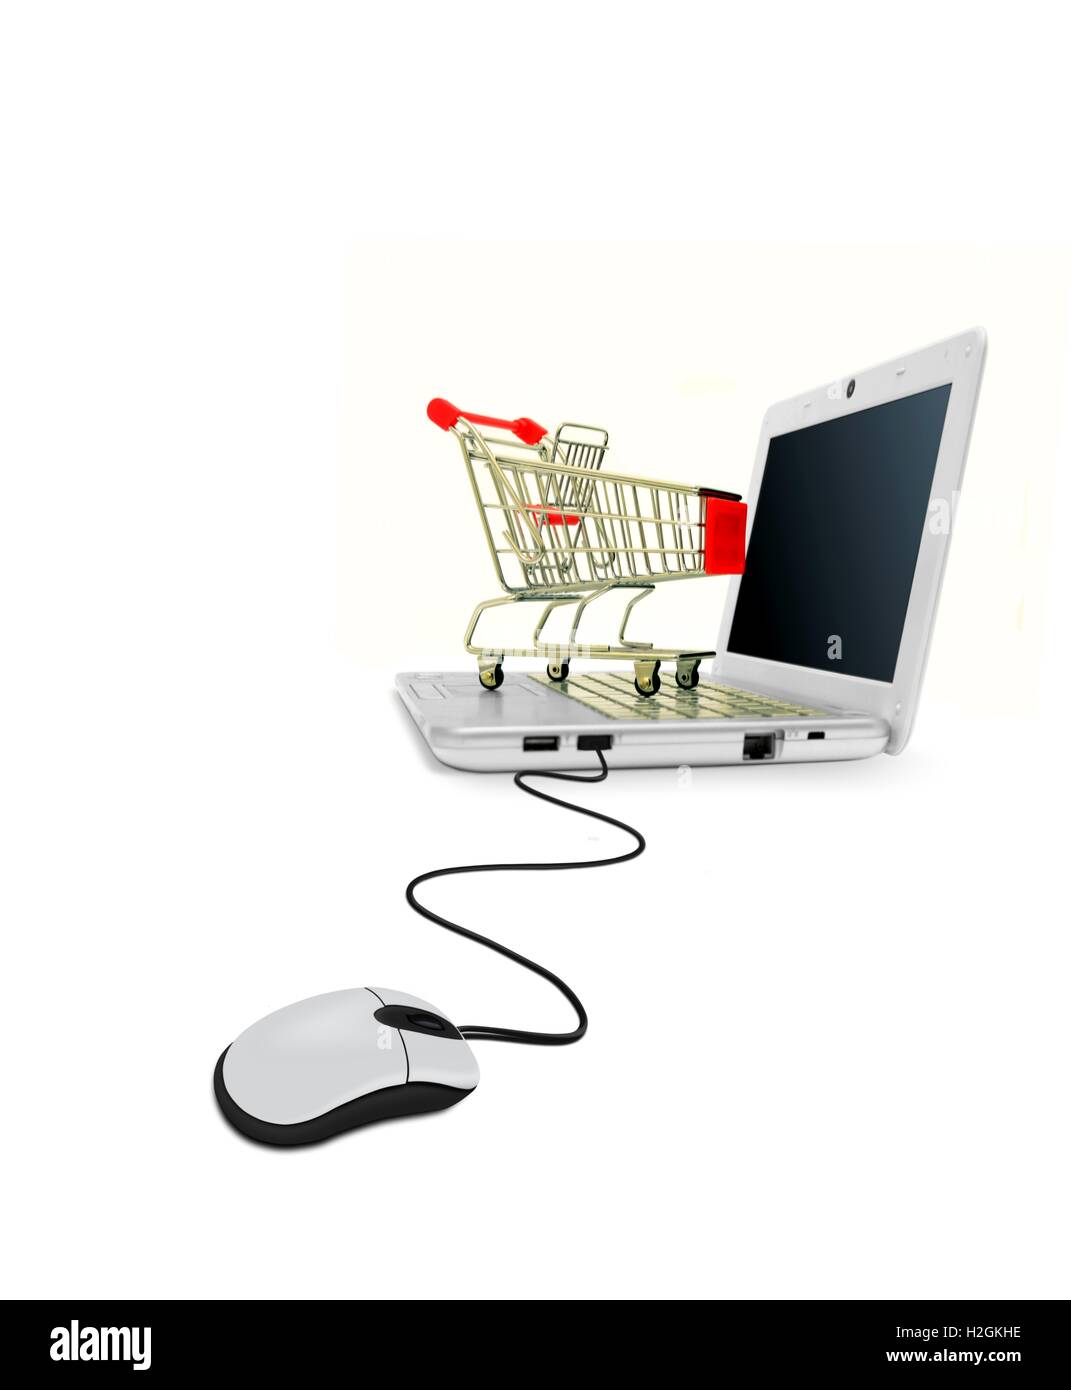 Computer Laptop With Mouse And Shopping Cart Stock Photo 122068506 Diagram